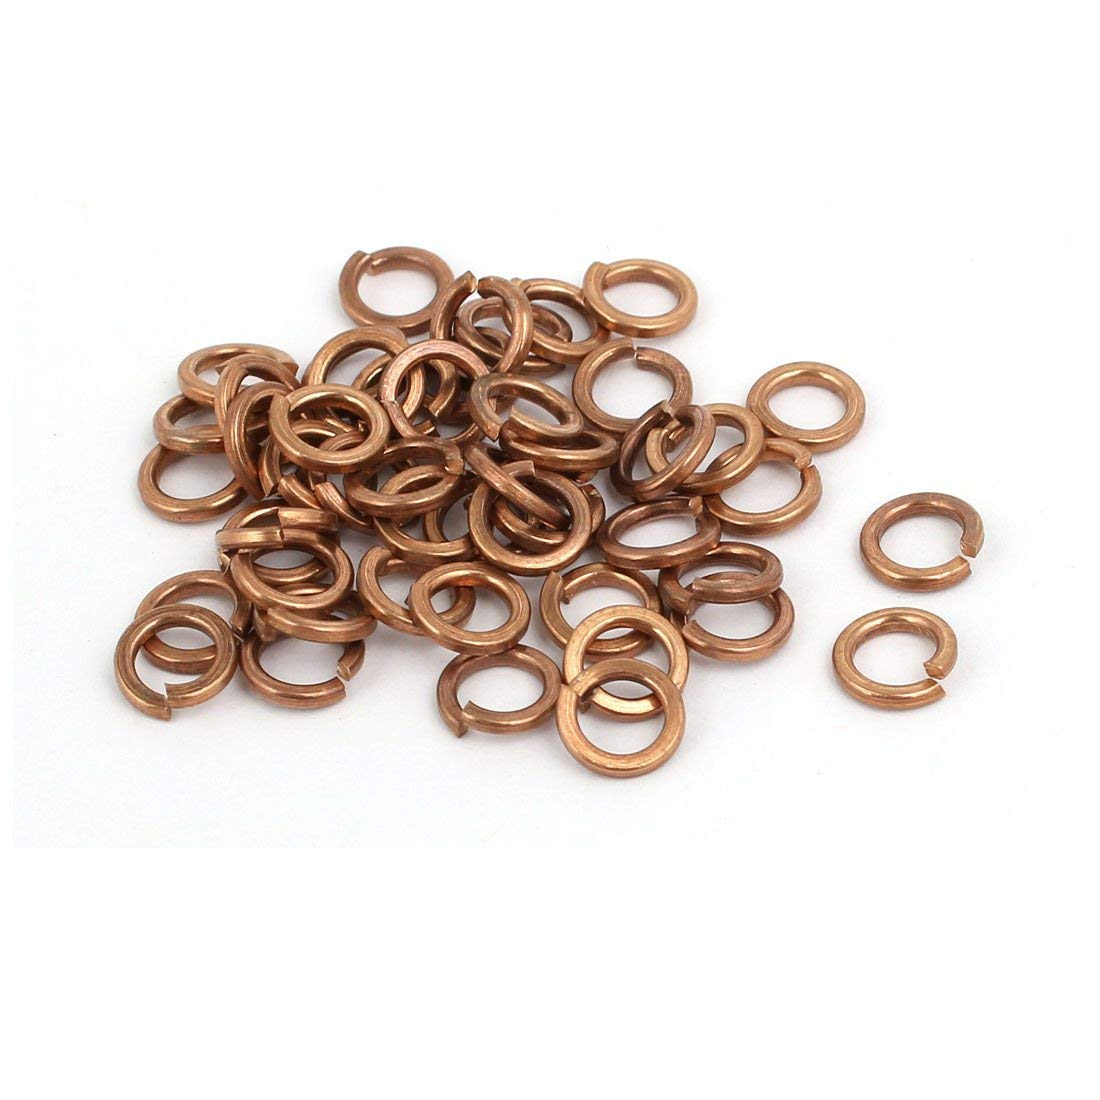 uxcell 4mm Inner Diameter Split Lock Spring Washer Gasket Copper Tone 50pcs